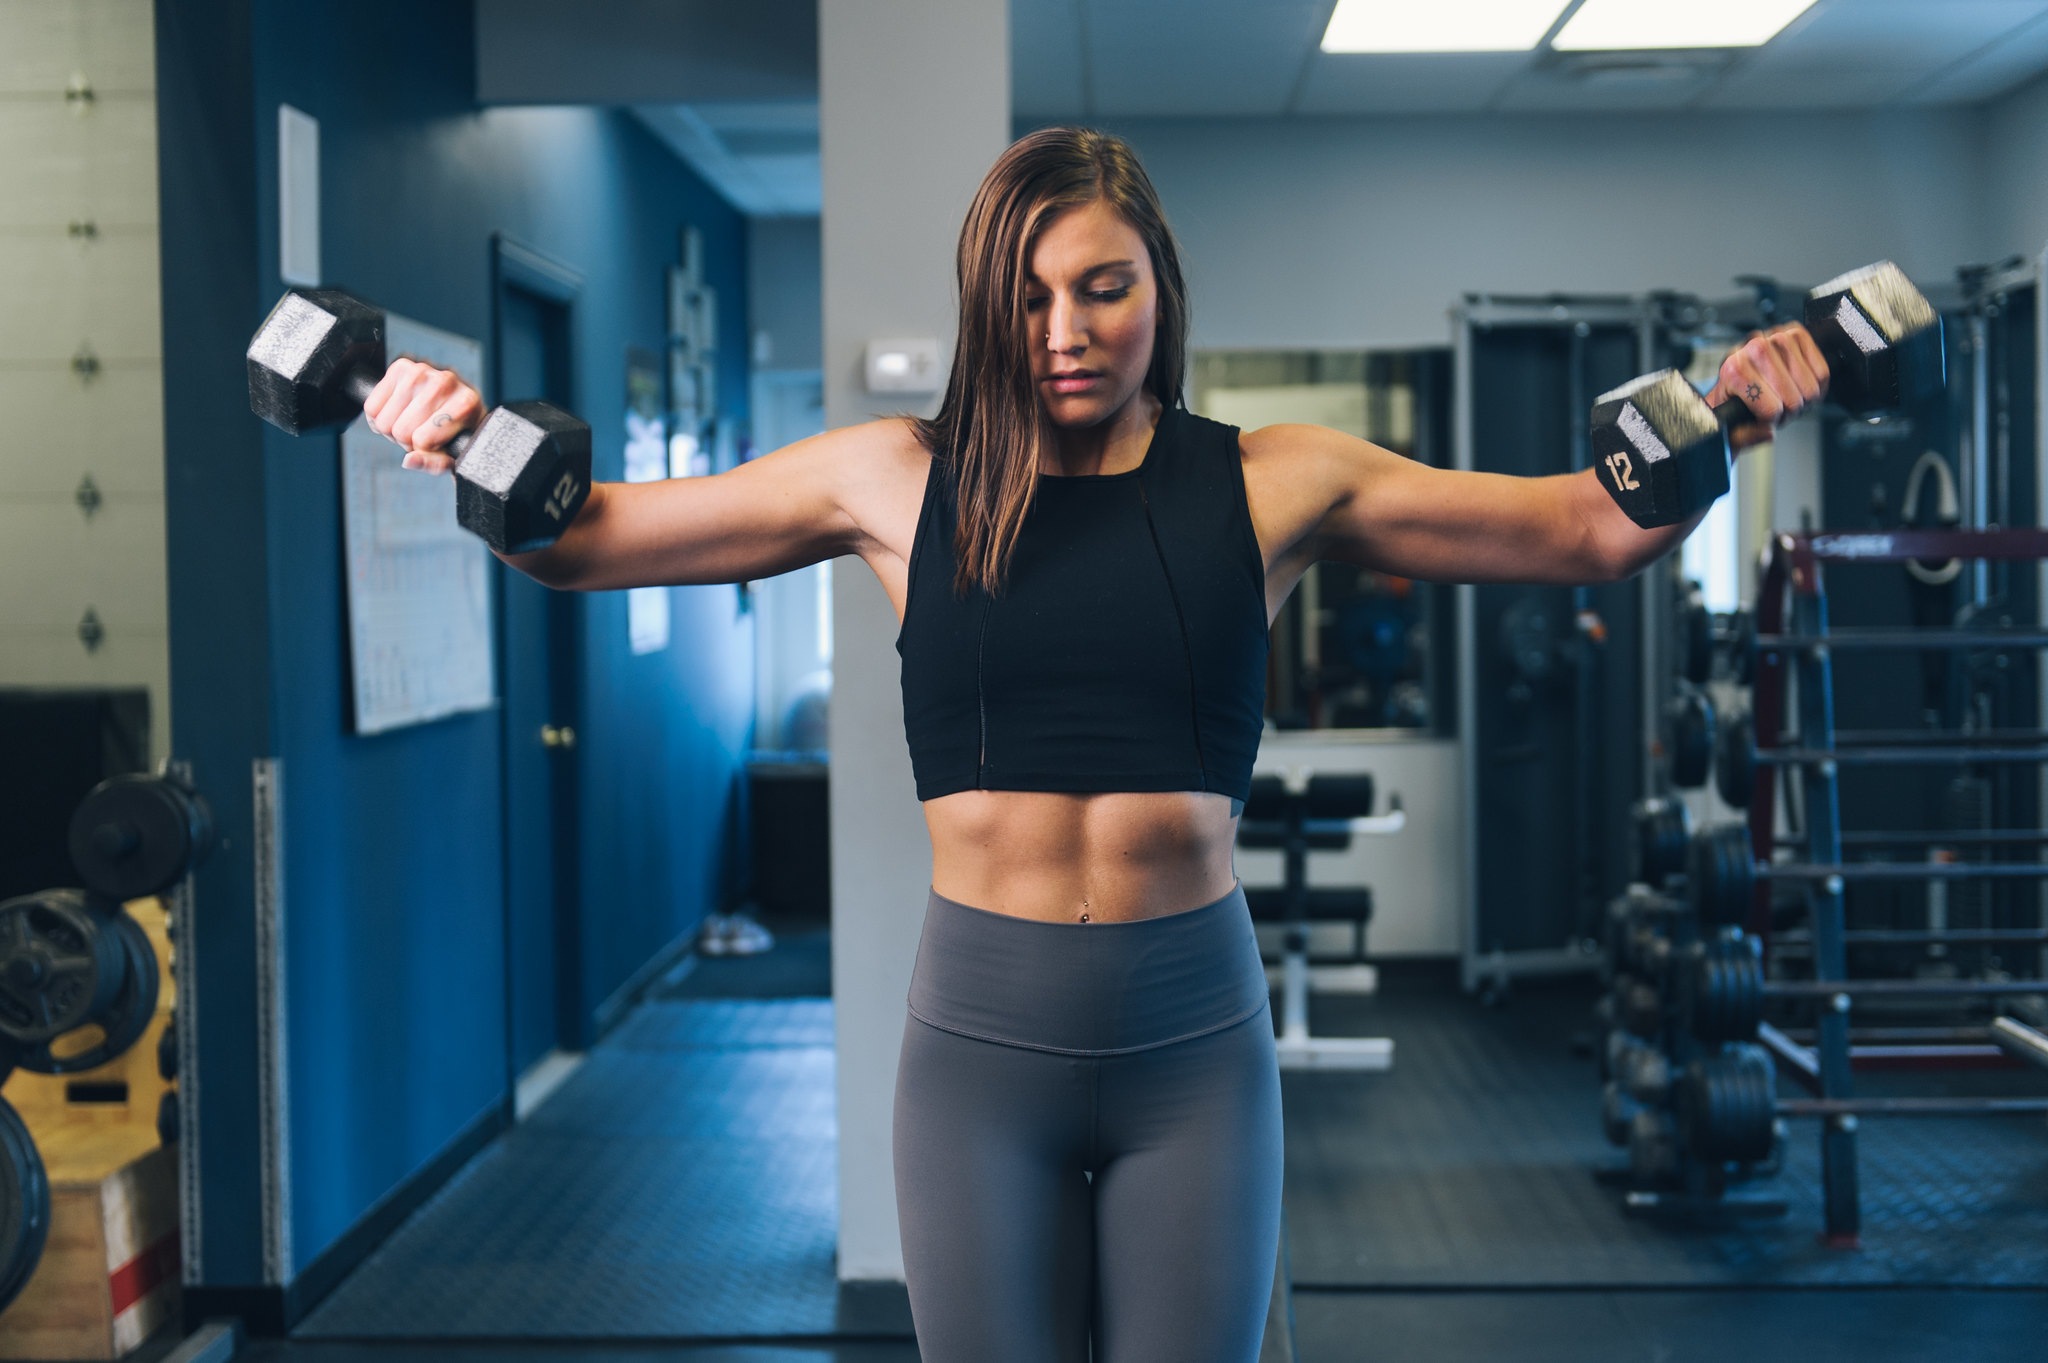 female trainer lifting dumbbells in a gym